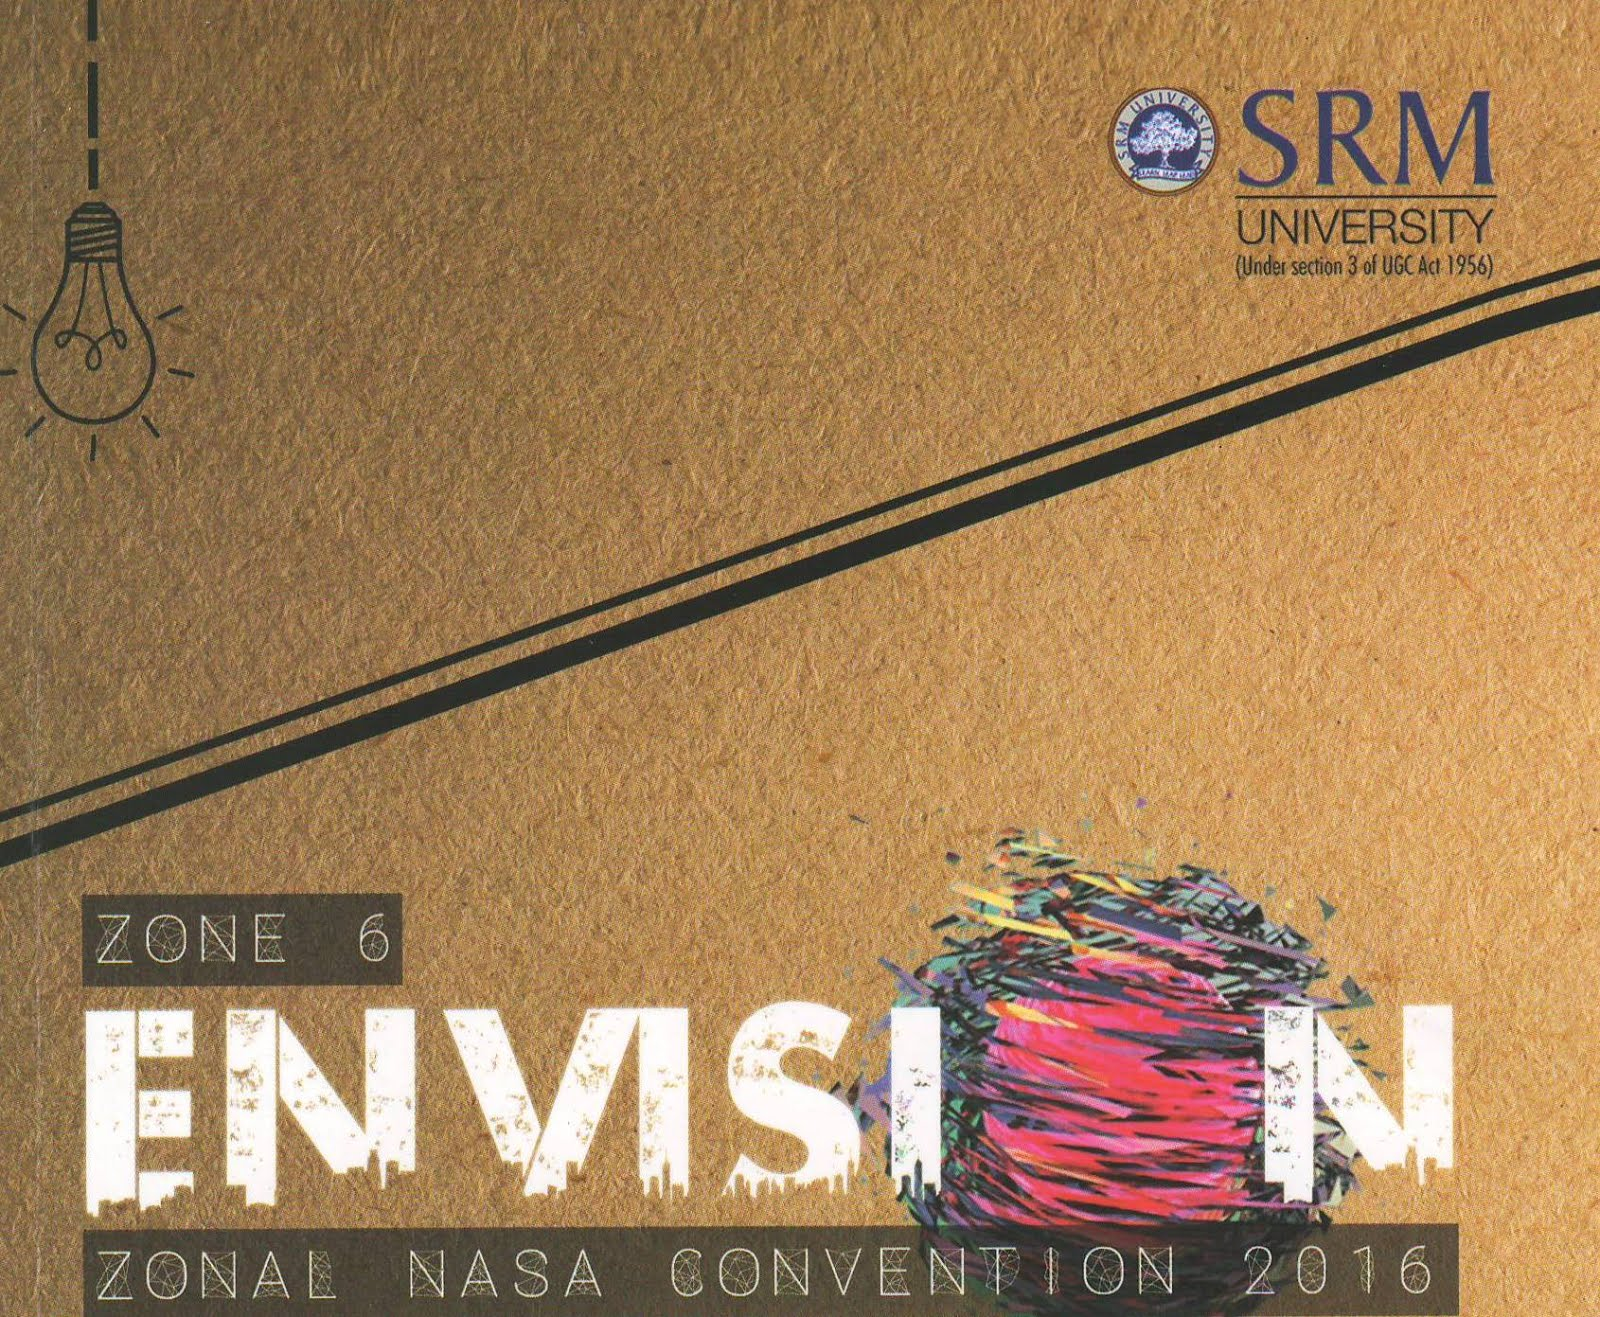 Envision -Zonal NASA convention